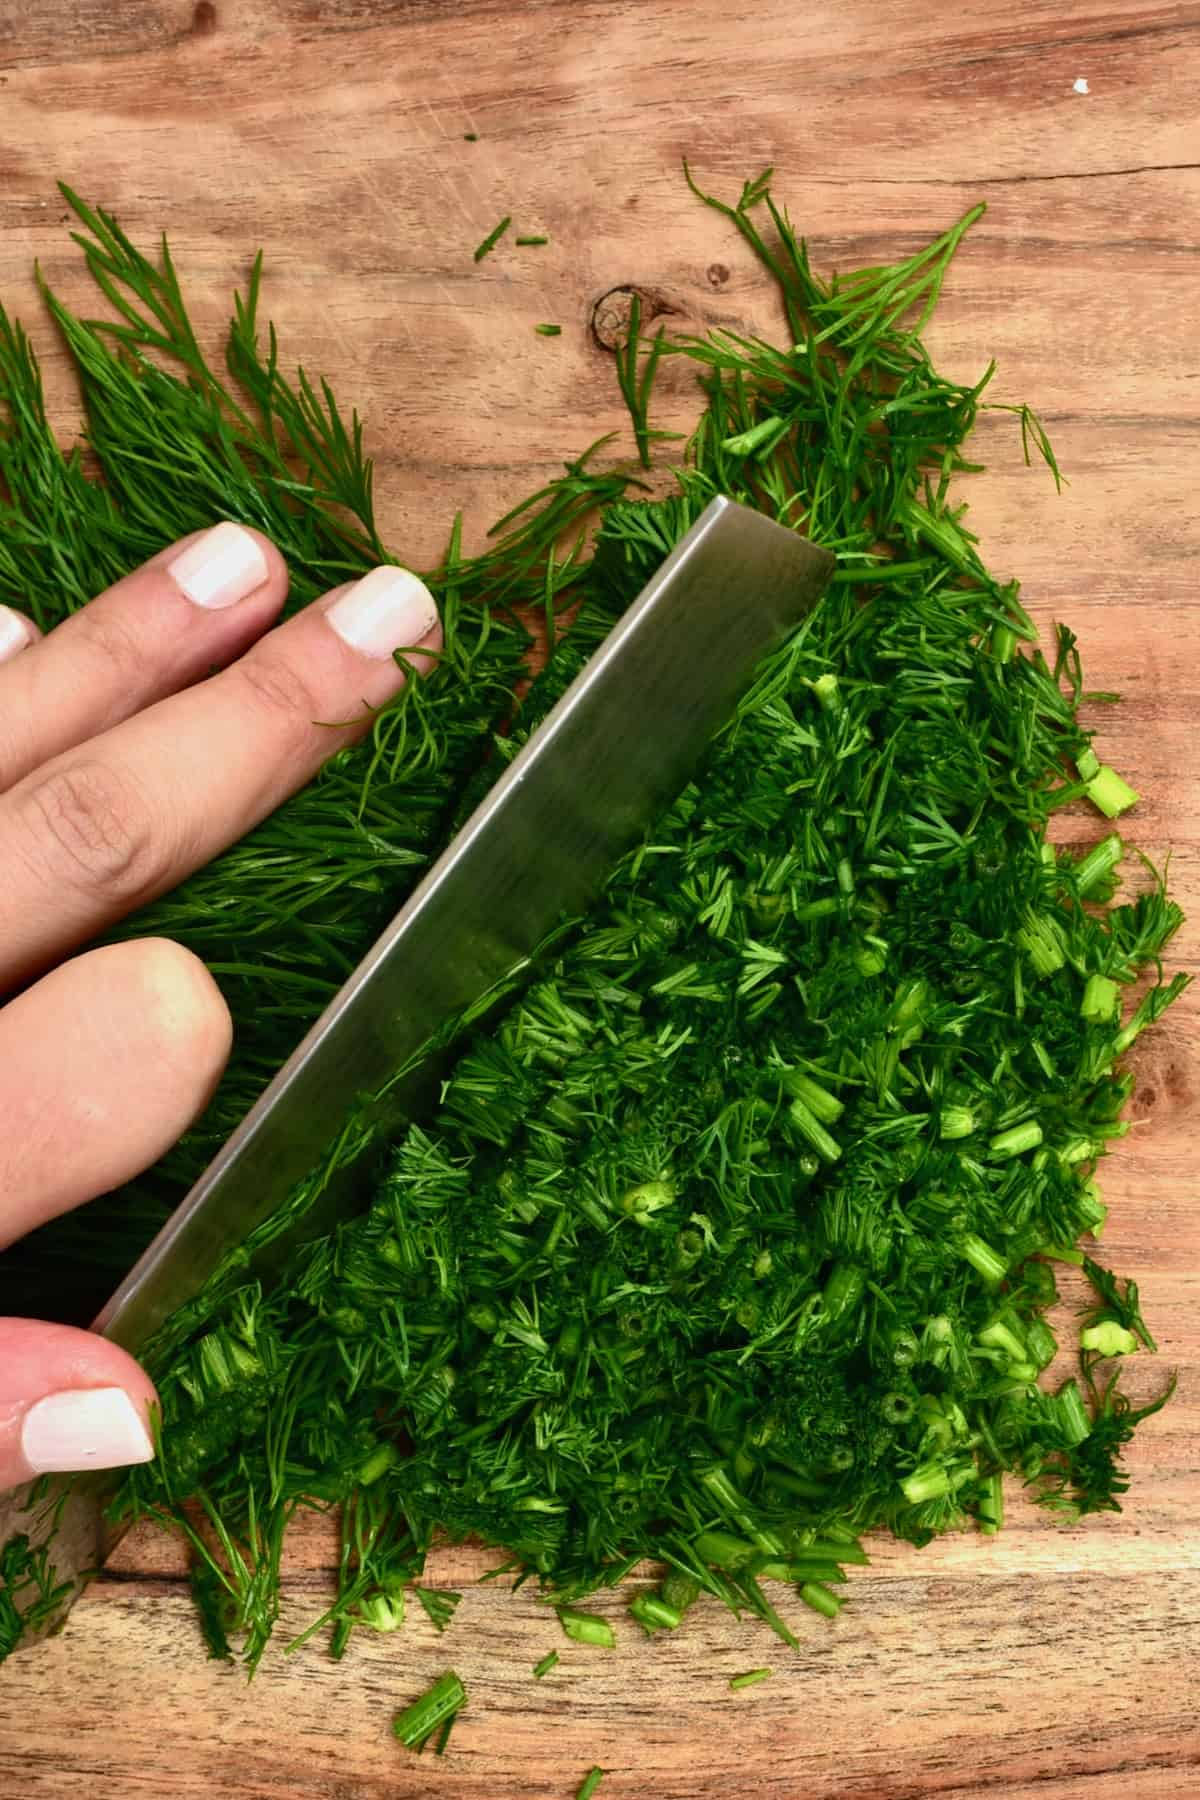 Chopping dill on a wooden board